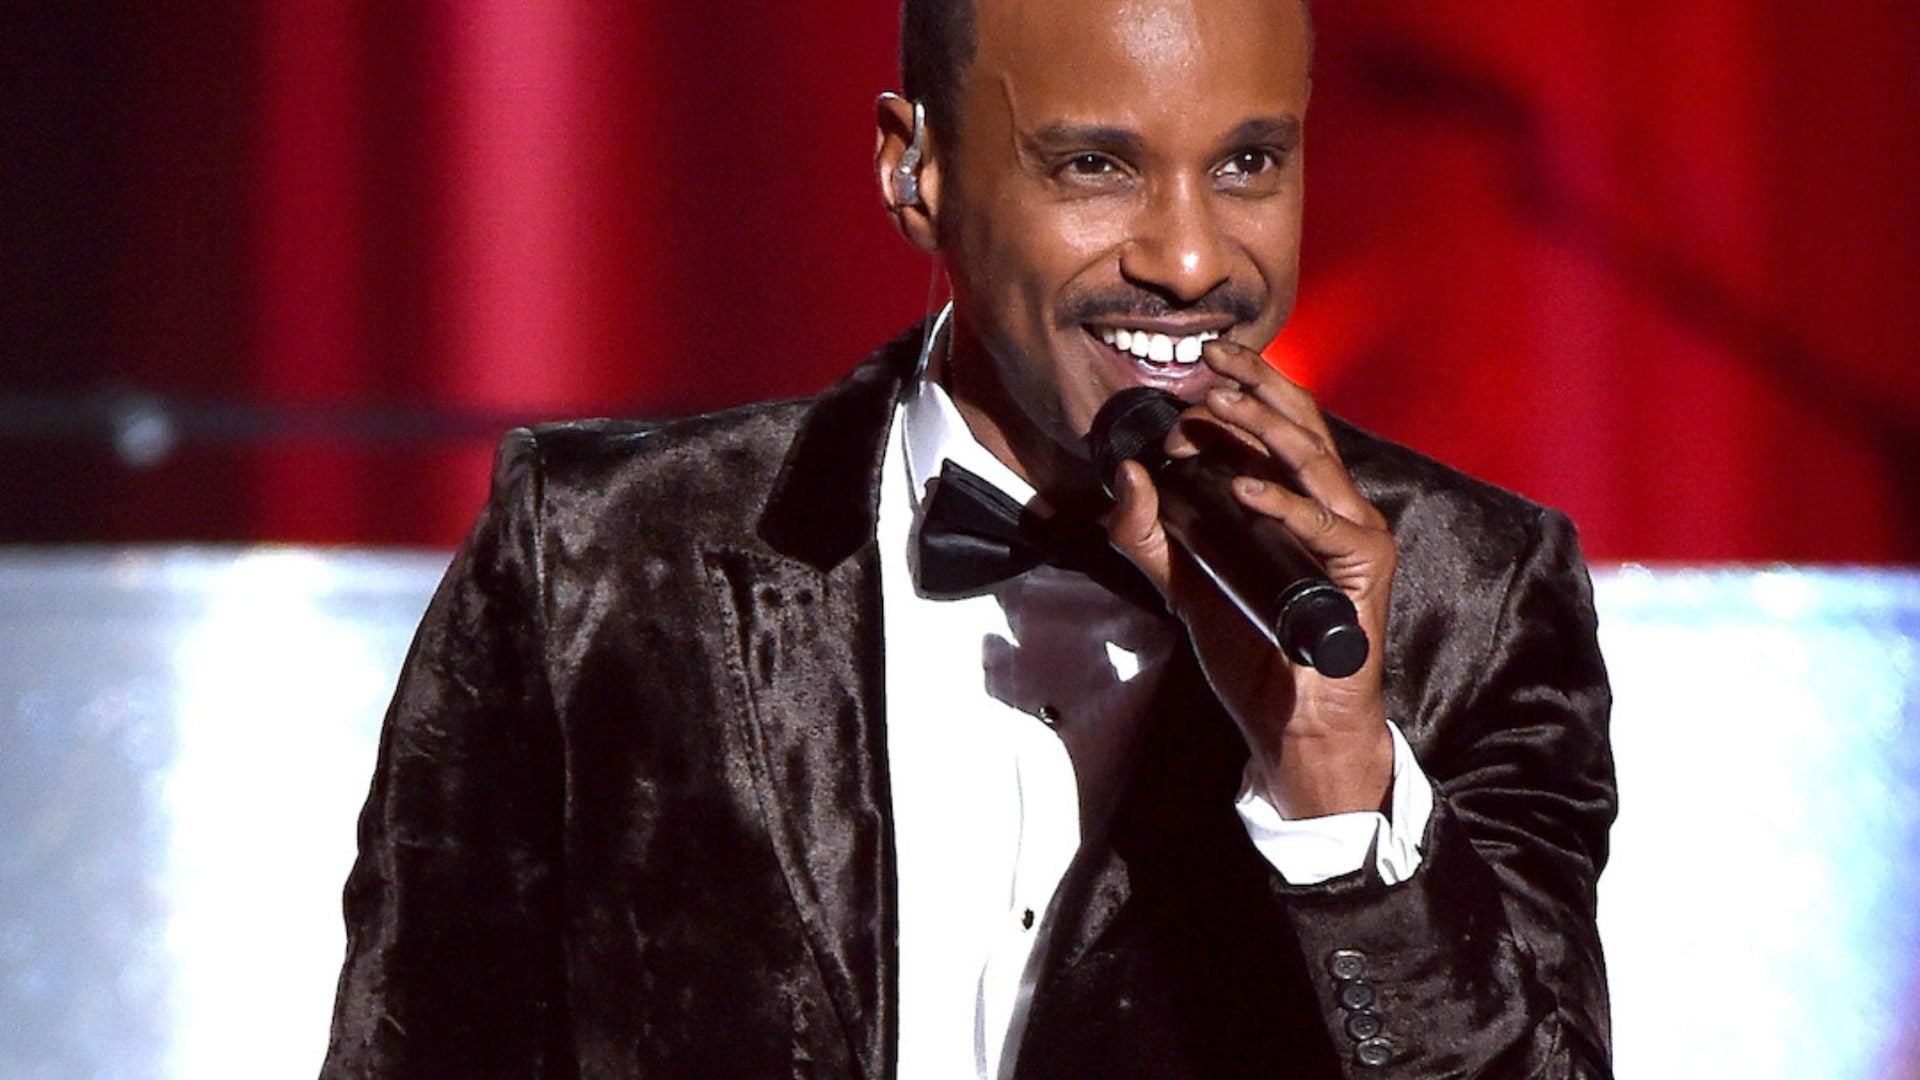 Tevin Campbell Is Ready To Release New Music